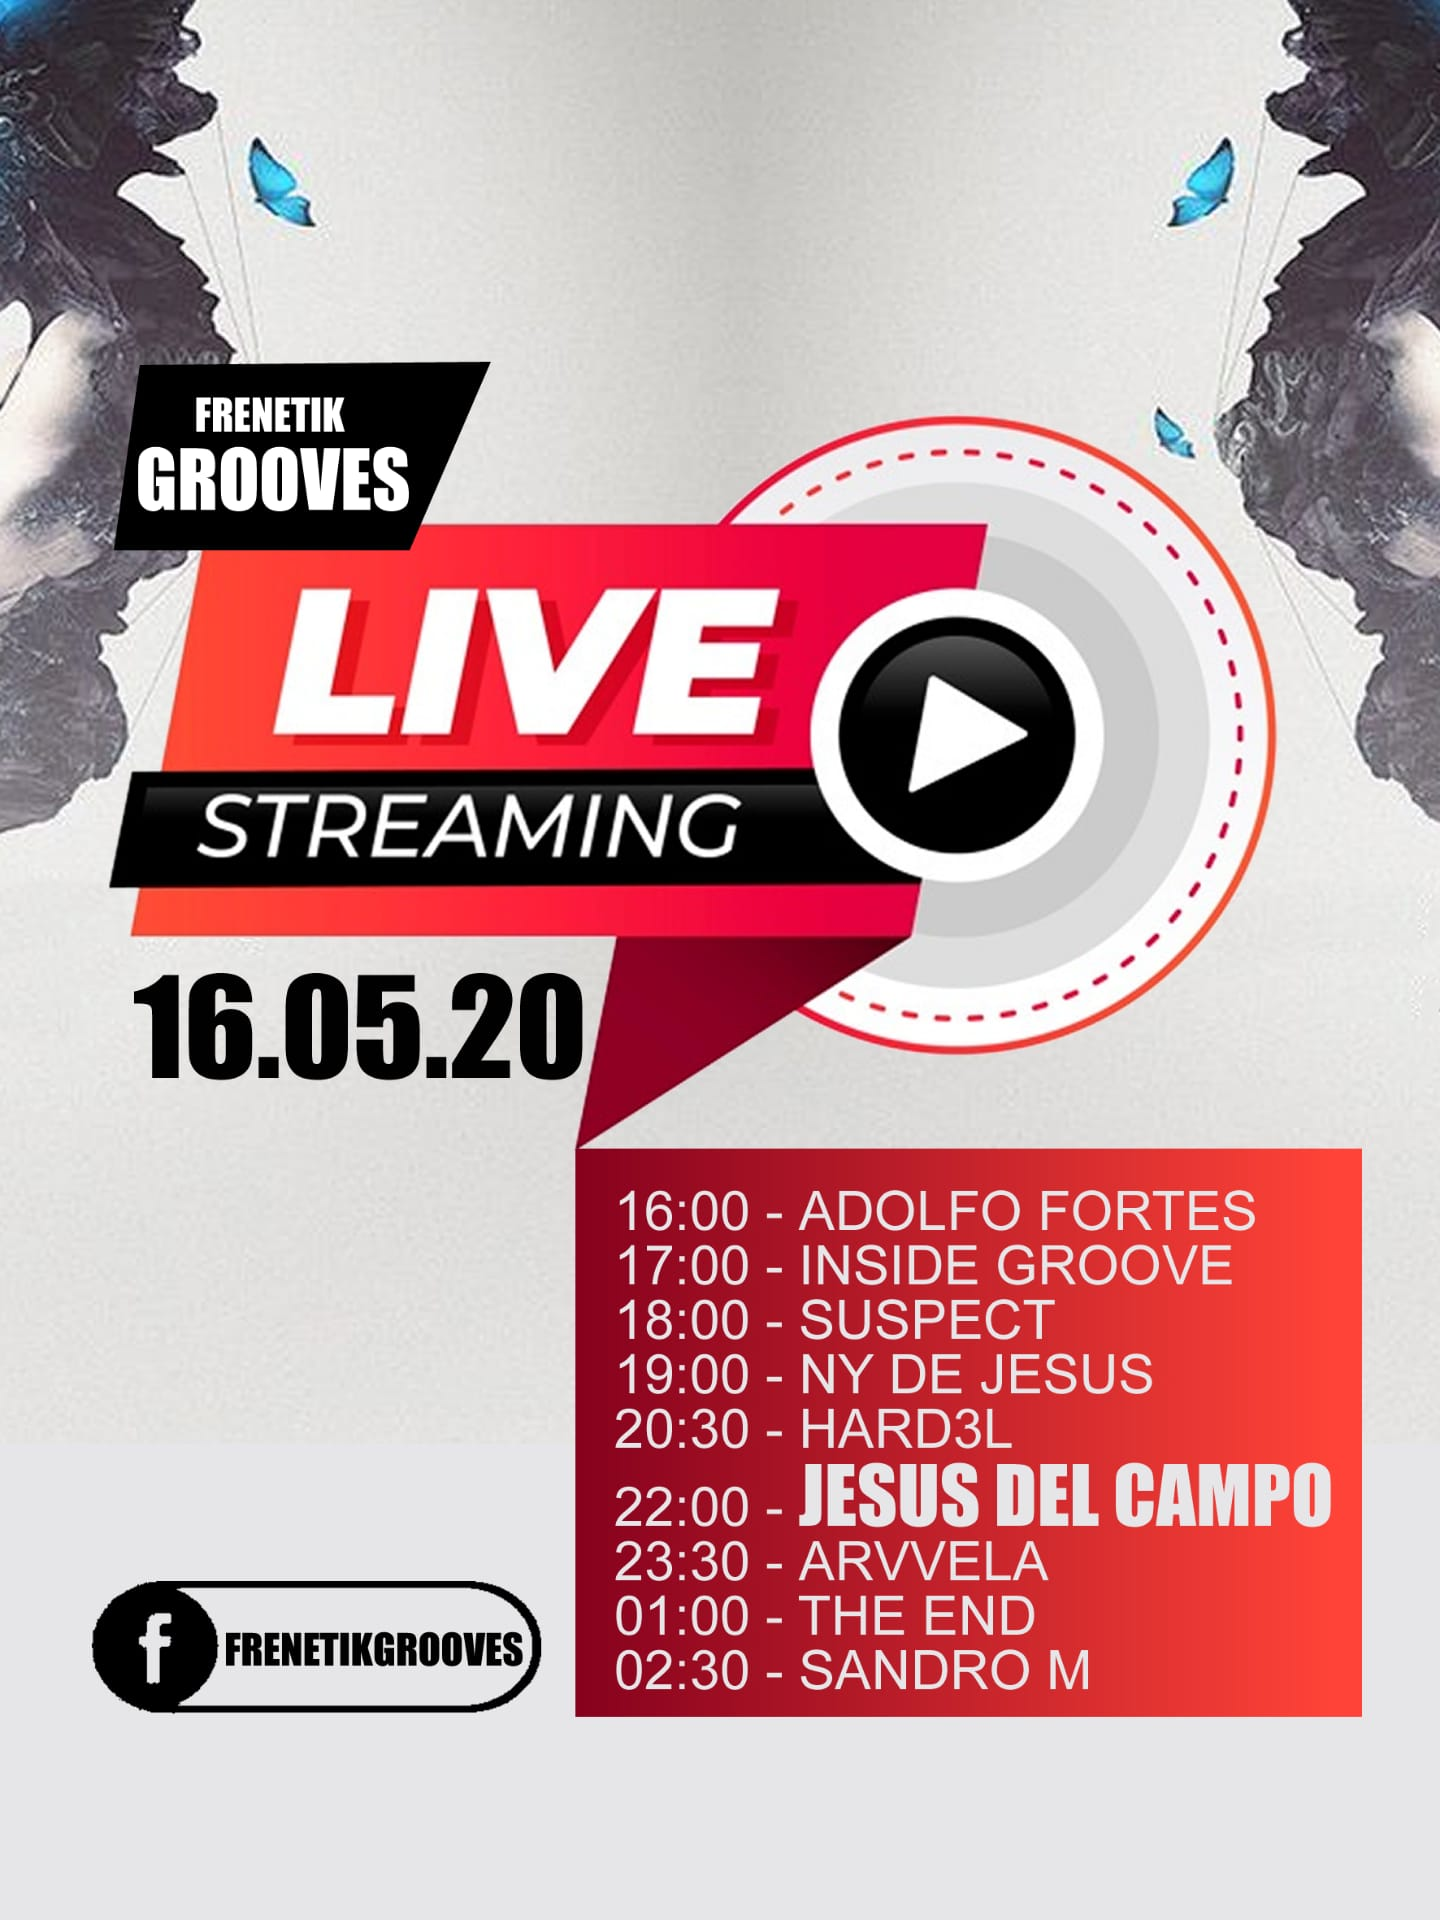 Live Stream Frenetik Grooves 16 may 2020 jesus del campo poster